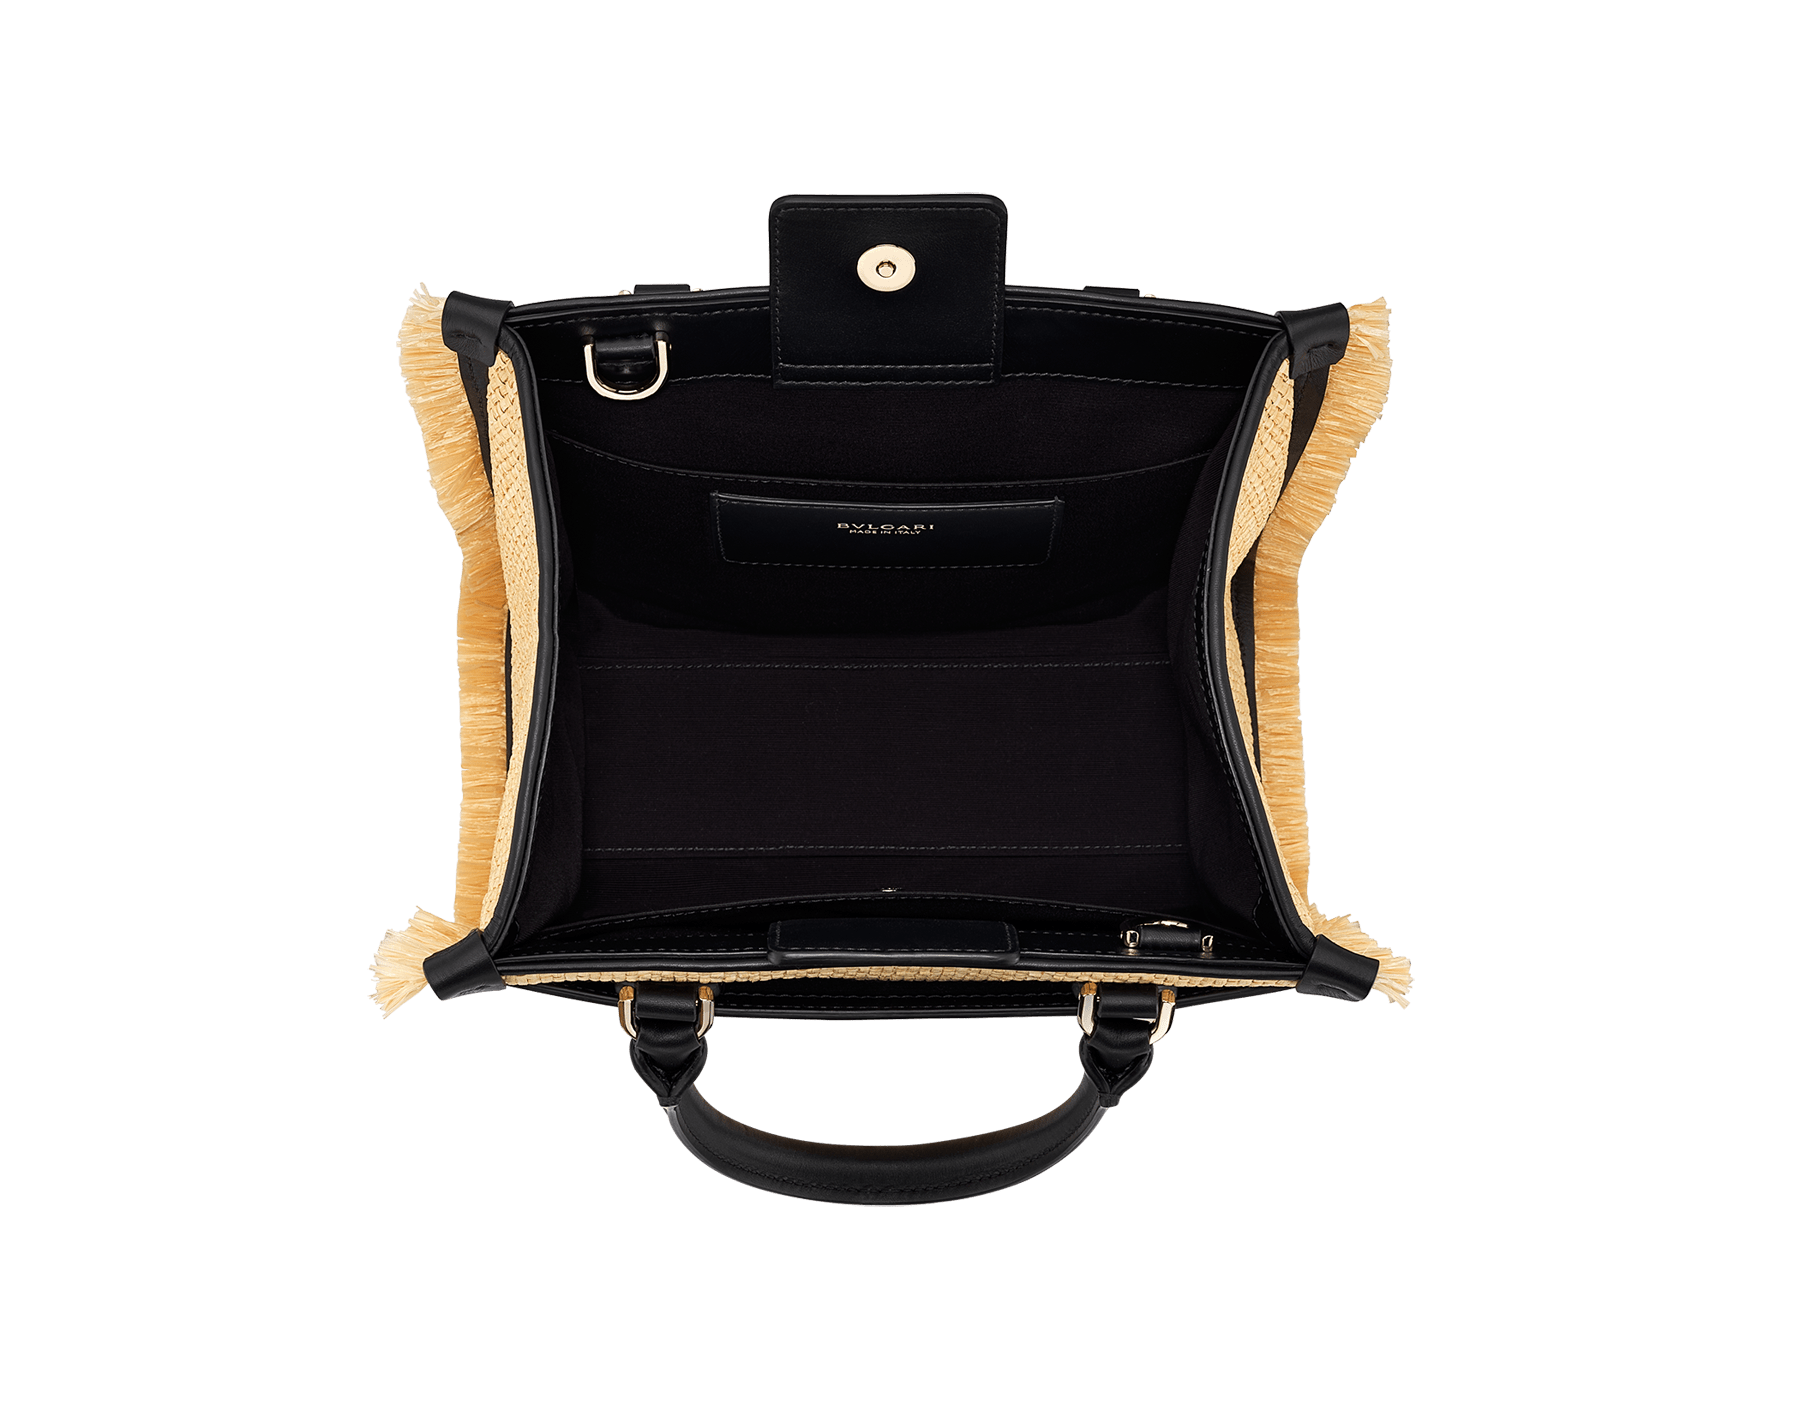 """Bvlgari Logo"" tote bag in beige raffia enhanced with beige raffia fringes, and black grosgrain internal lining. Bvlgari logo featured with chain inserts on the black calf leather. 290953 image 4"